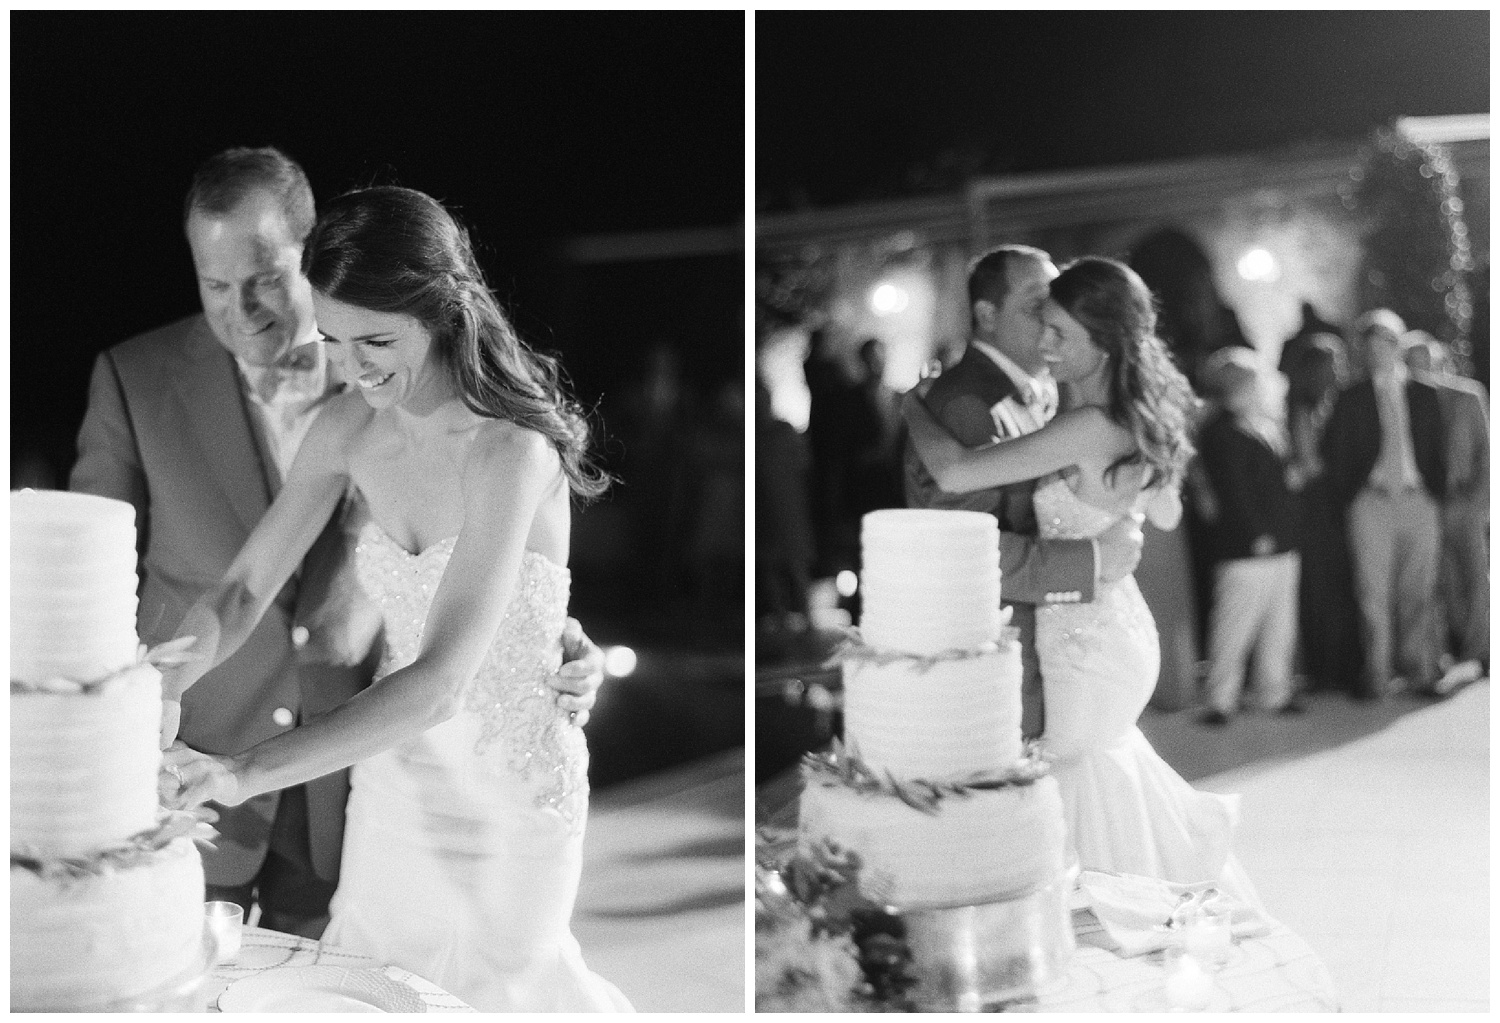 The couple cuts the cake and dances the night away after their wedding in Ravello Italy, Sylvie Gil Photography